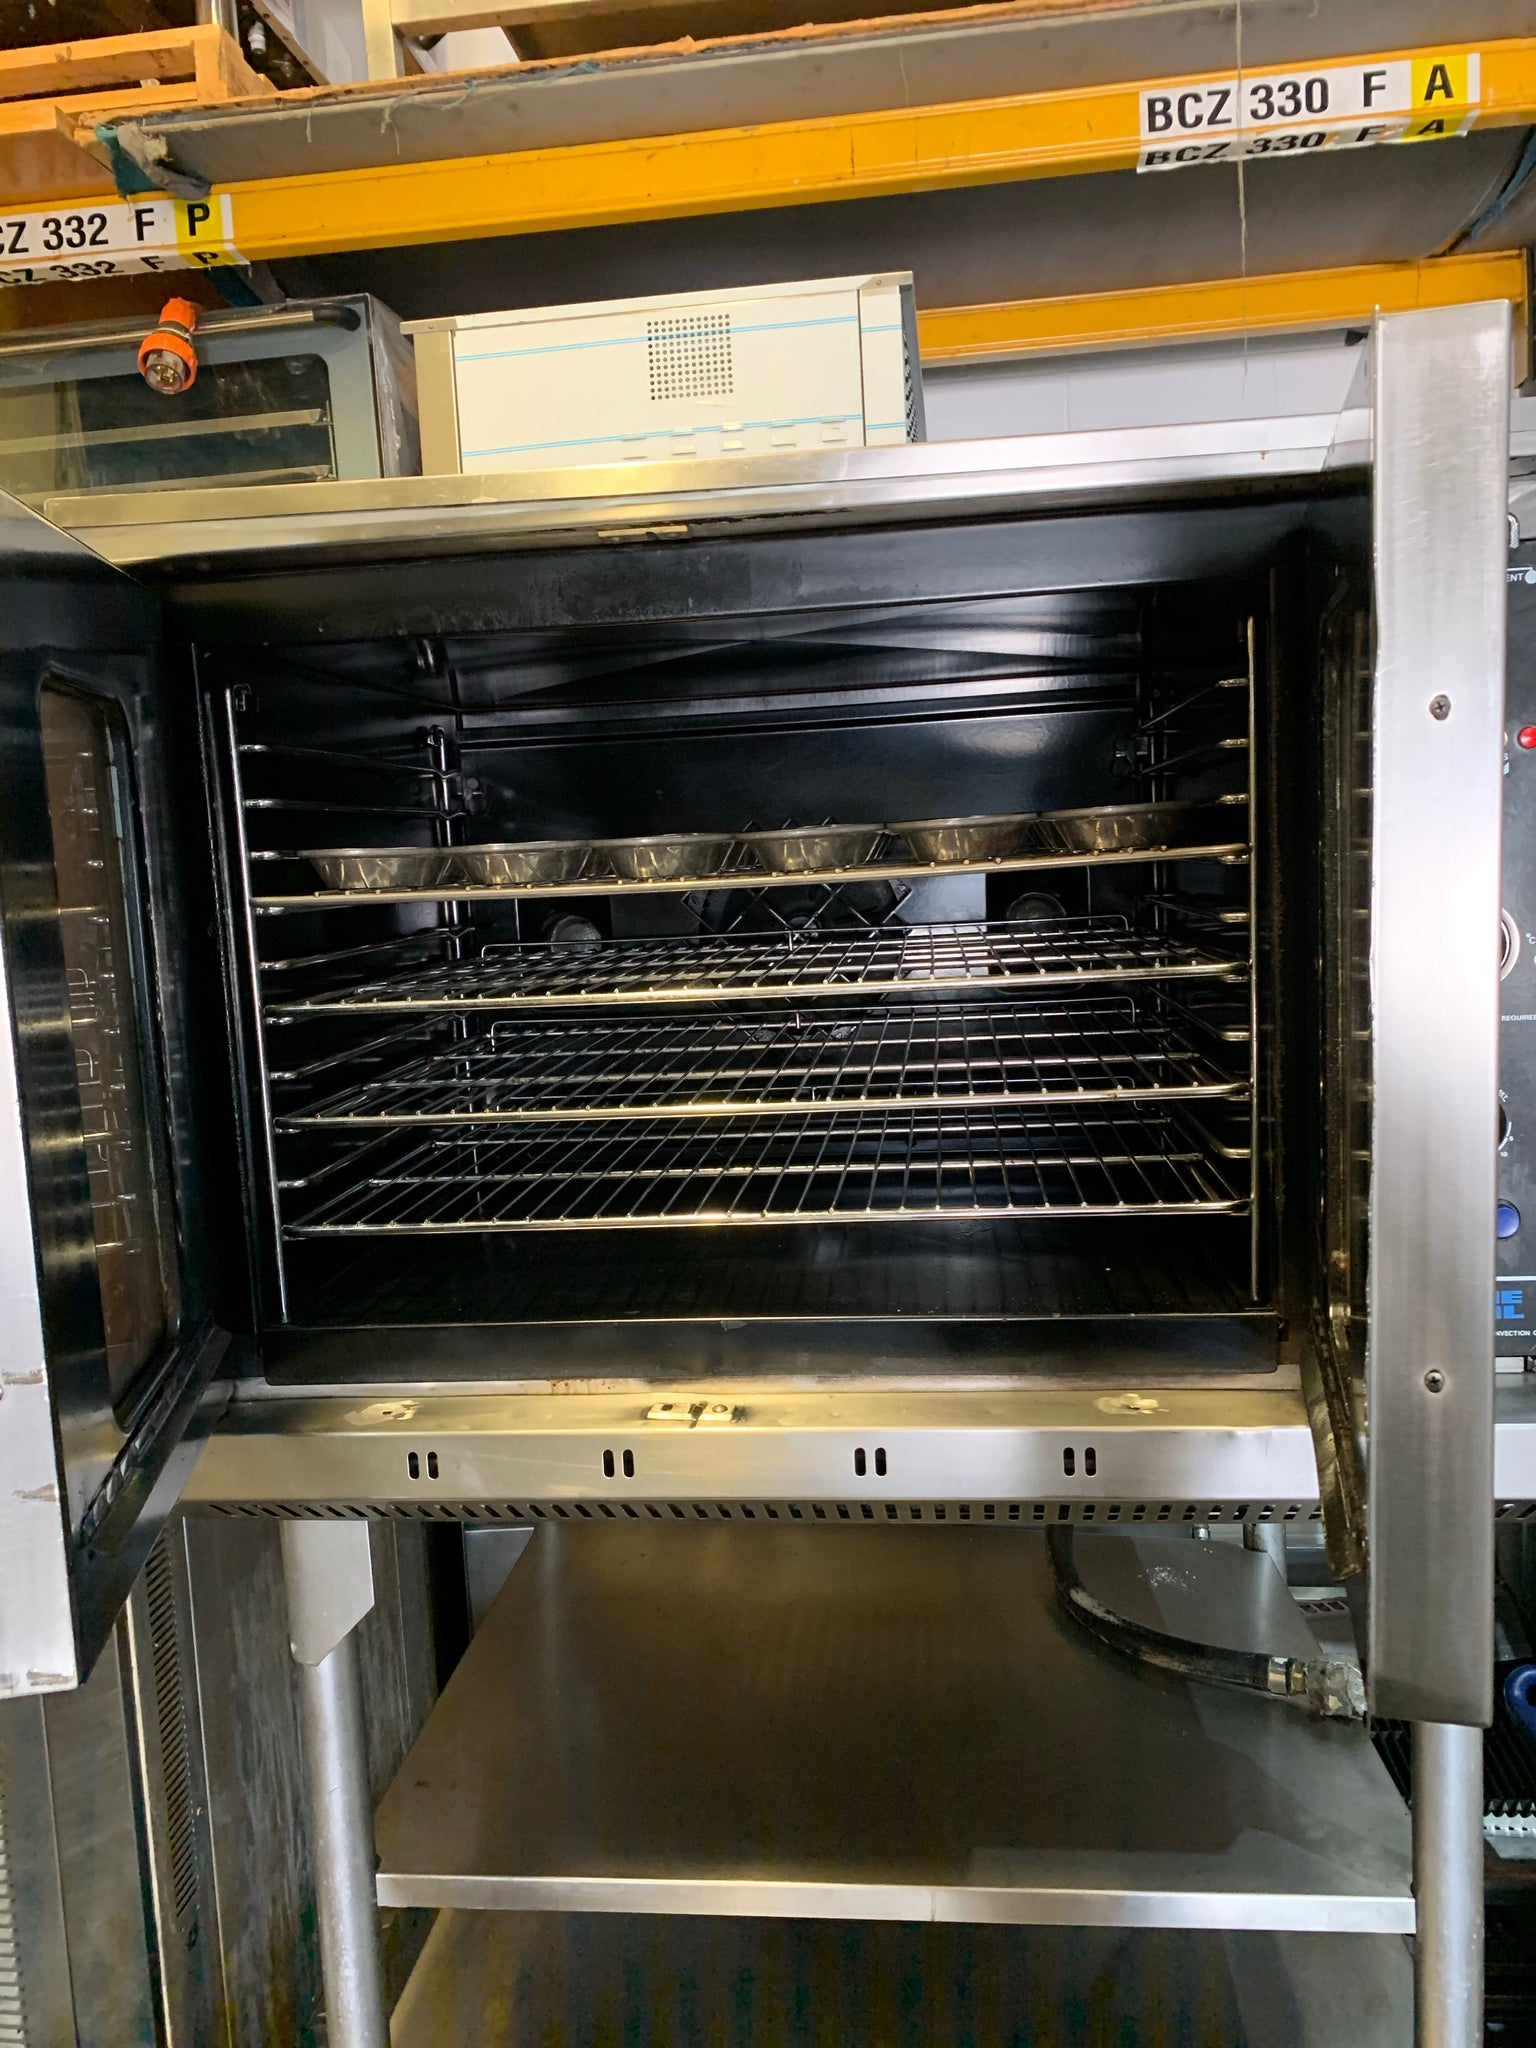 APS374 BLUE SEAL TURBOFAN 5TRYS ELECTRIC, PLG, TOWN GAS, NATURAL GAS CONVECTION OVEN( BAKING AND ROASTING) WITH STAND AND WARRANTY - Washpro